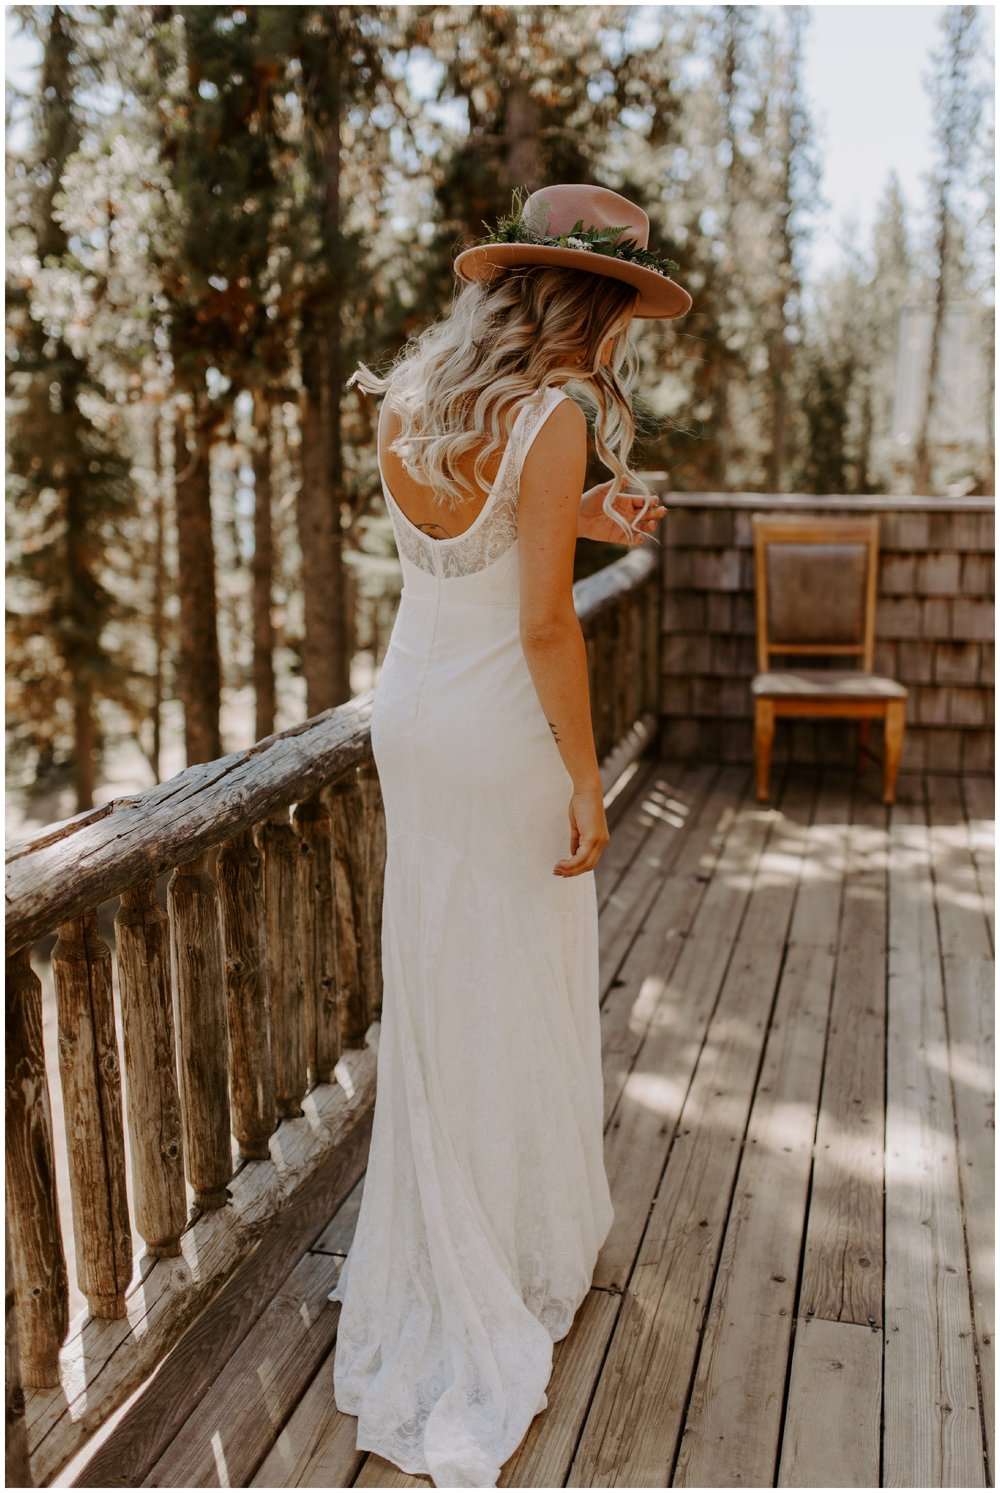 Bend Boho Campsite Wedding Eastern Oregon - Jessica Heron Images_0014.jpg